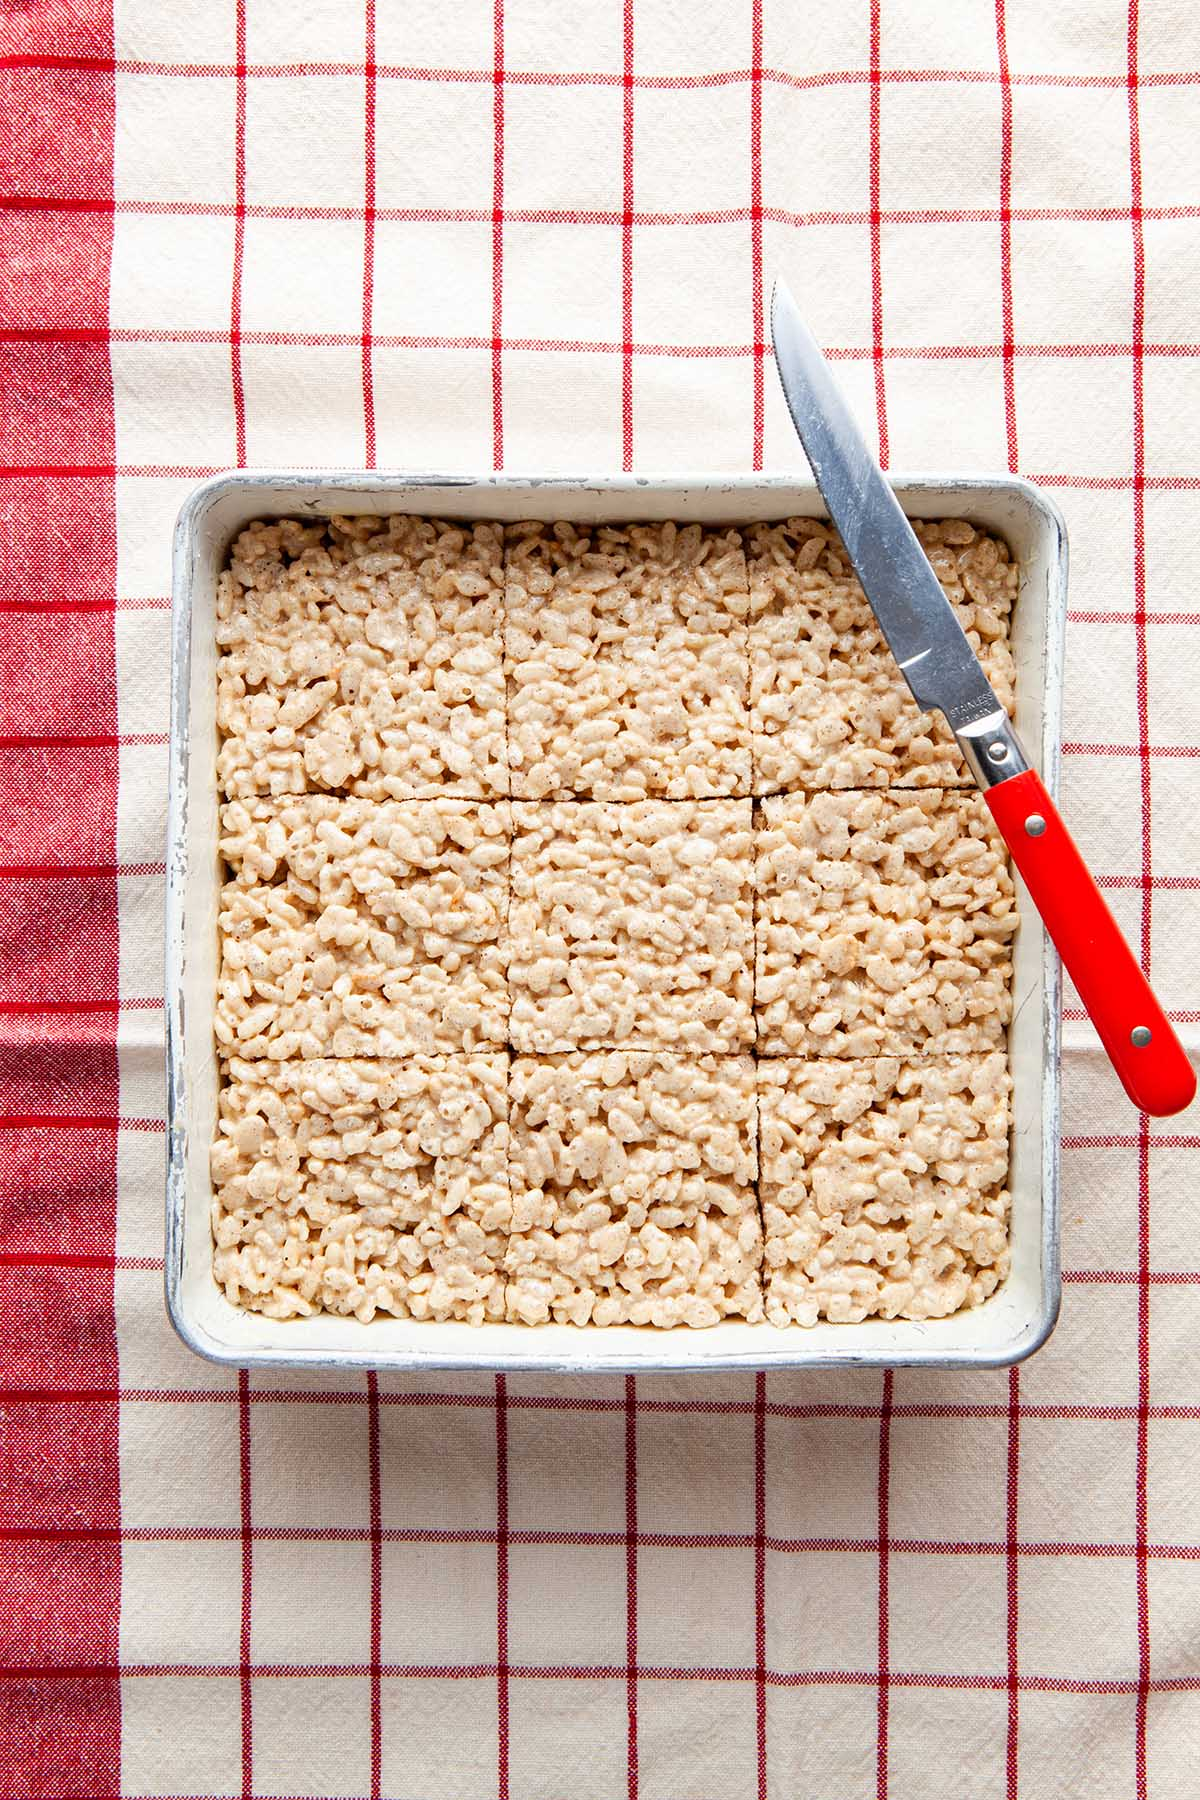 A pan of cut Rice Krispie squares with a red-orange-handled knife on a res checked tea towel.